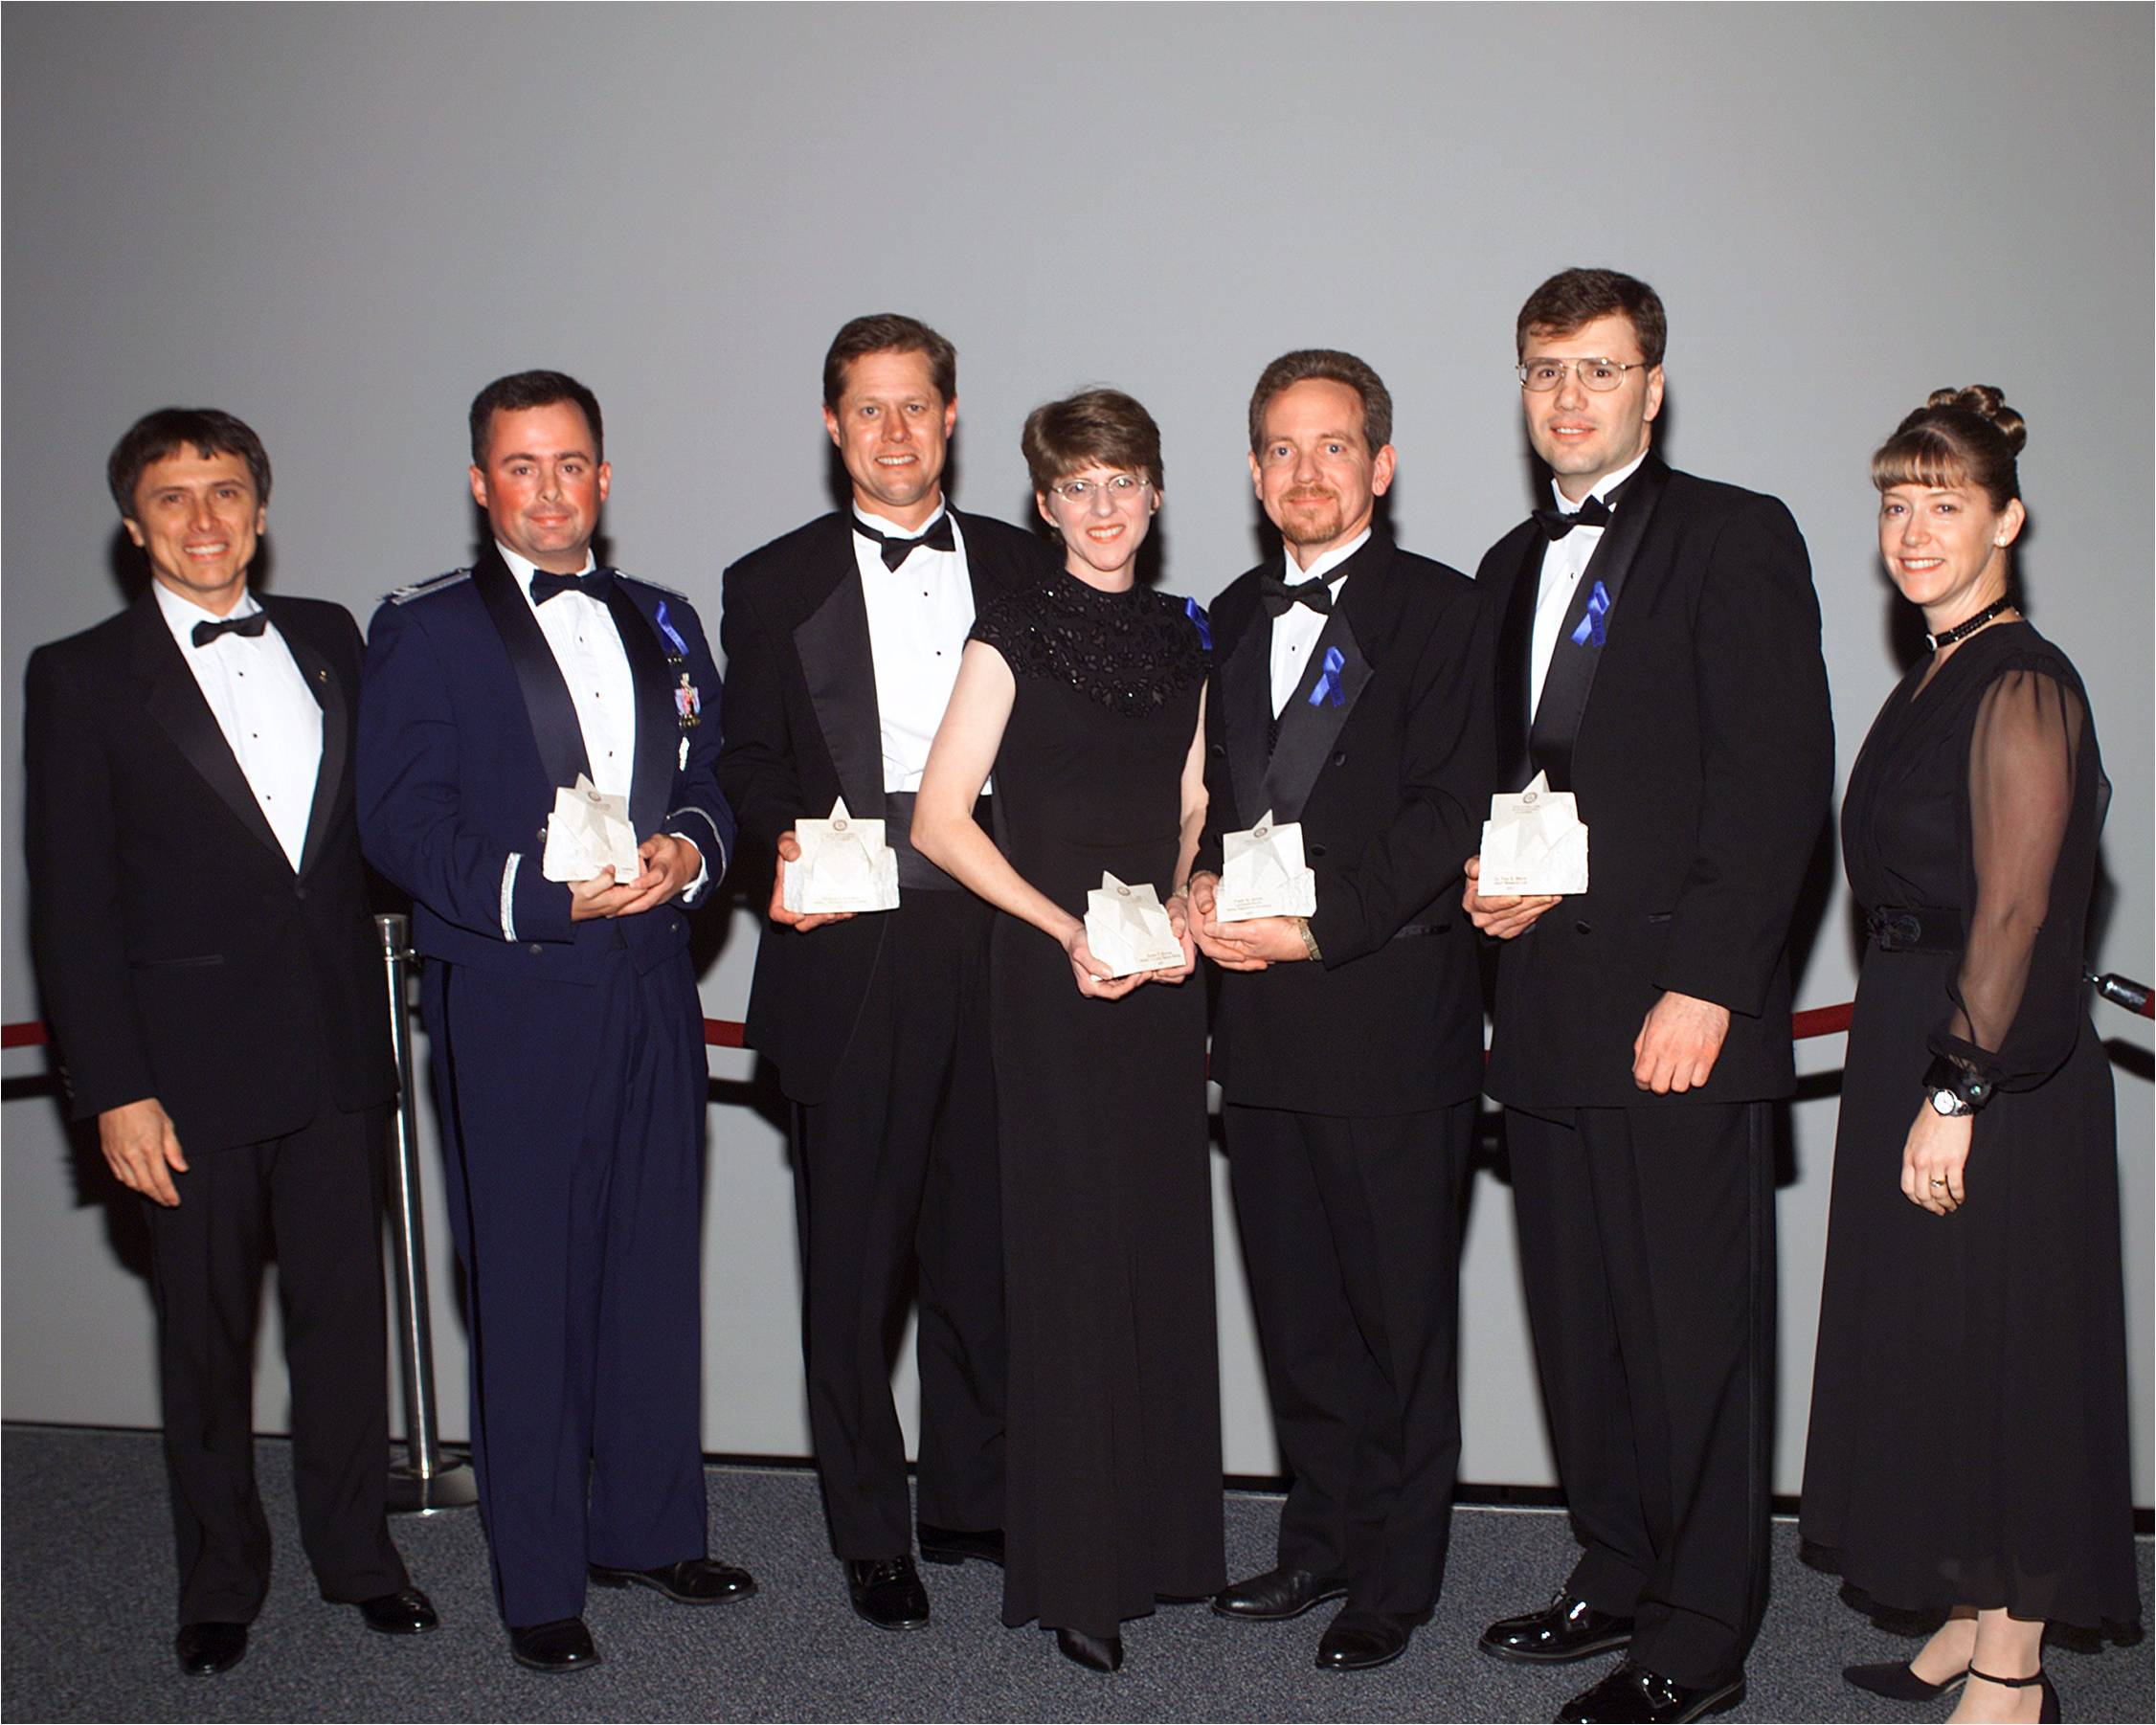 2001 Stellar Early Category Winners with Dr. Franklin Chang-Diaz and Lt. Col. Pam Melroy